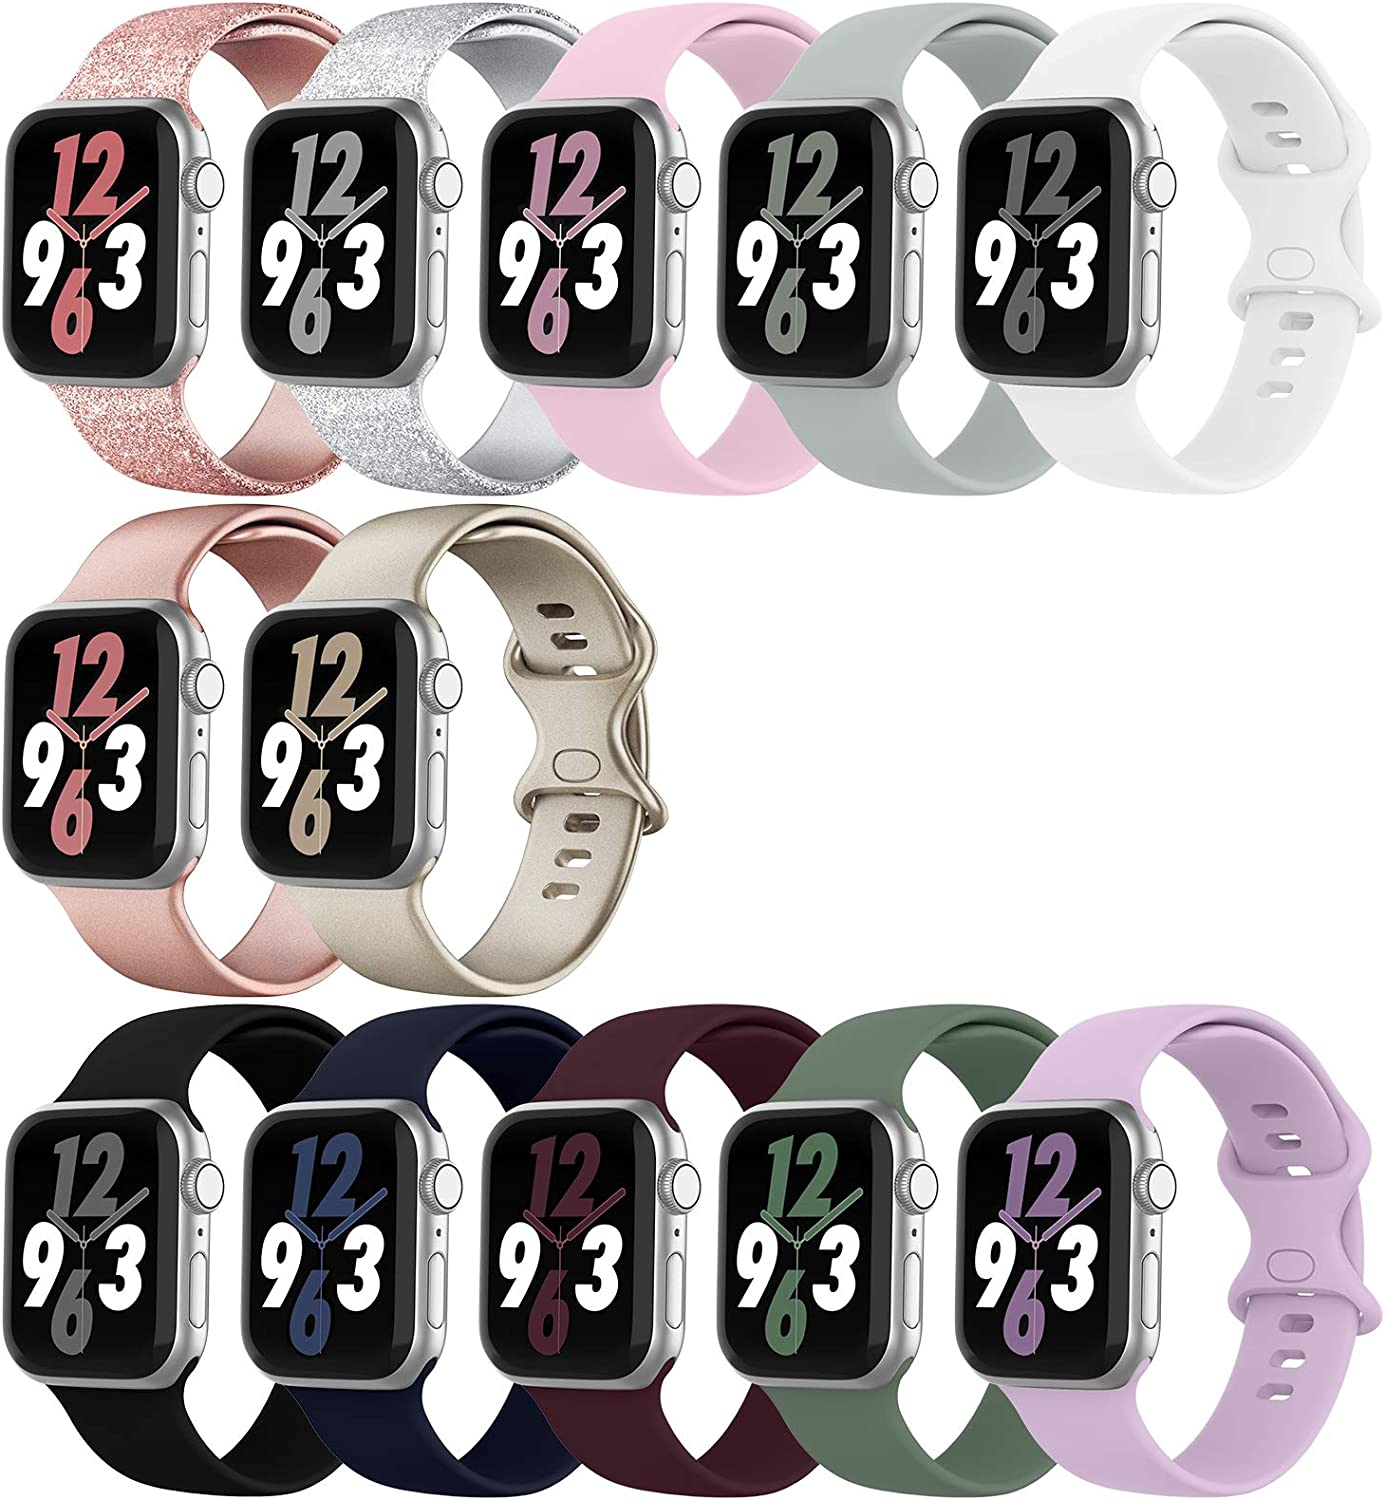 WASPO 12 Pack Compatible with Apple Watch Band 38mm 42mm 40mm 44mm, Soft Silicone Sport Bands Strap Compatible with iWatch Series 6/5/4/3/2/1 SE (38mm/40mm-S/M)